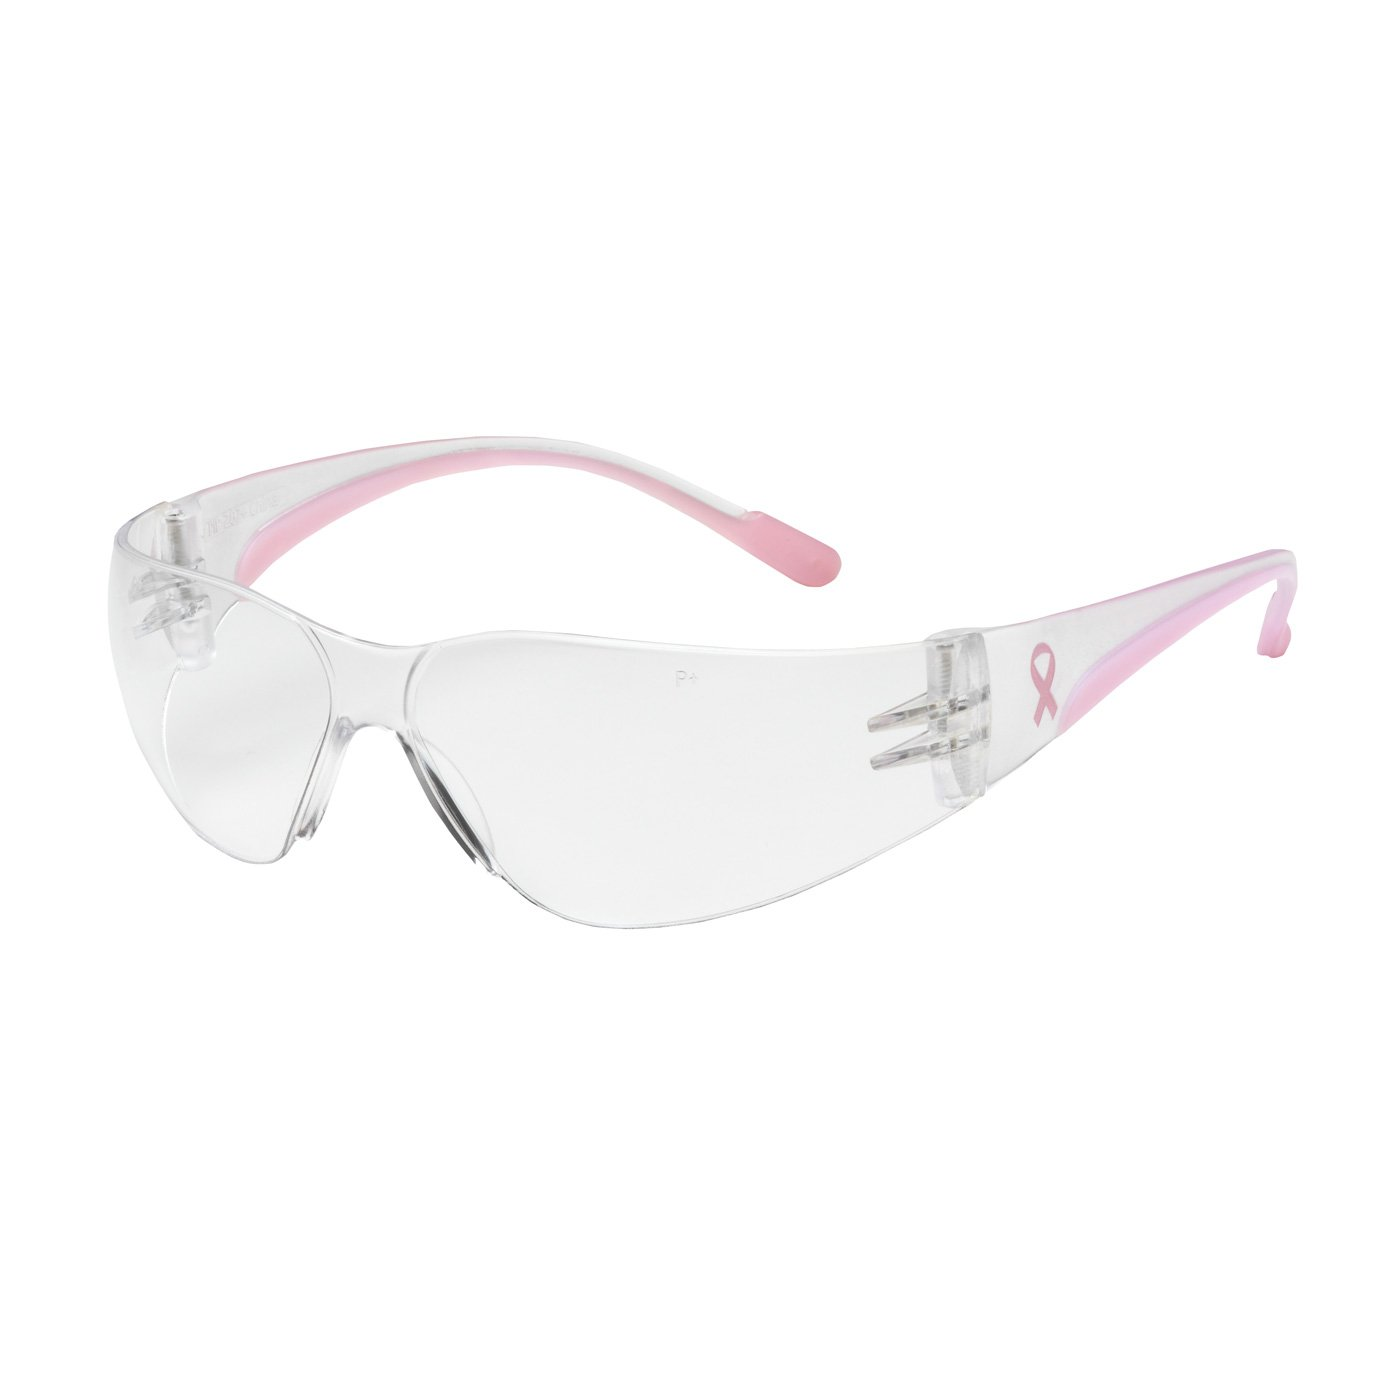 Eva Petite 250-11-0900 Rimless Safety Glasses with Clear/Pink Temple, Clear Lens and Anti-Scratch Coating